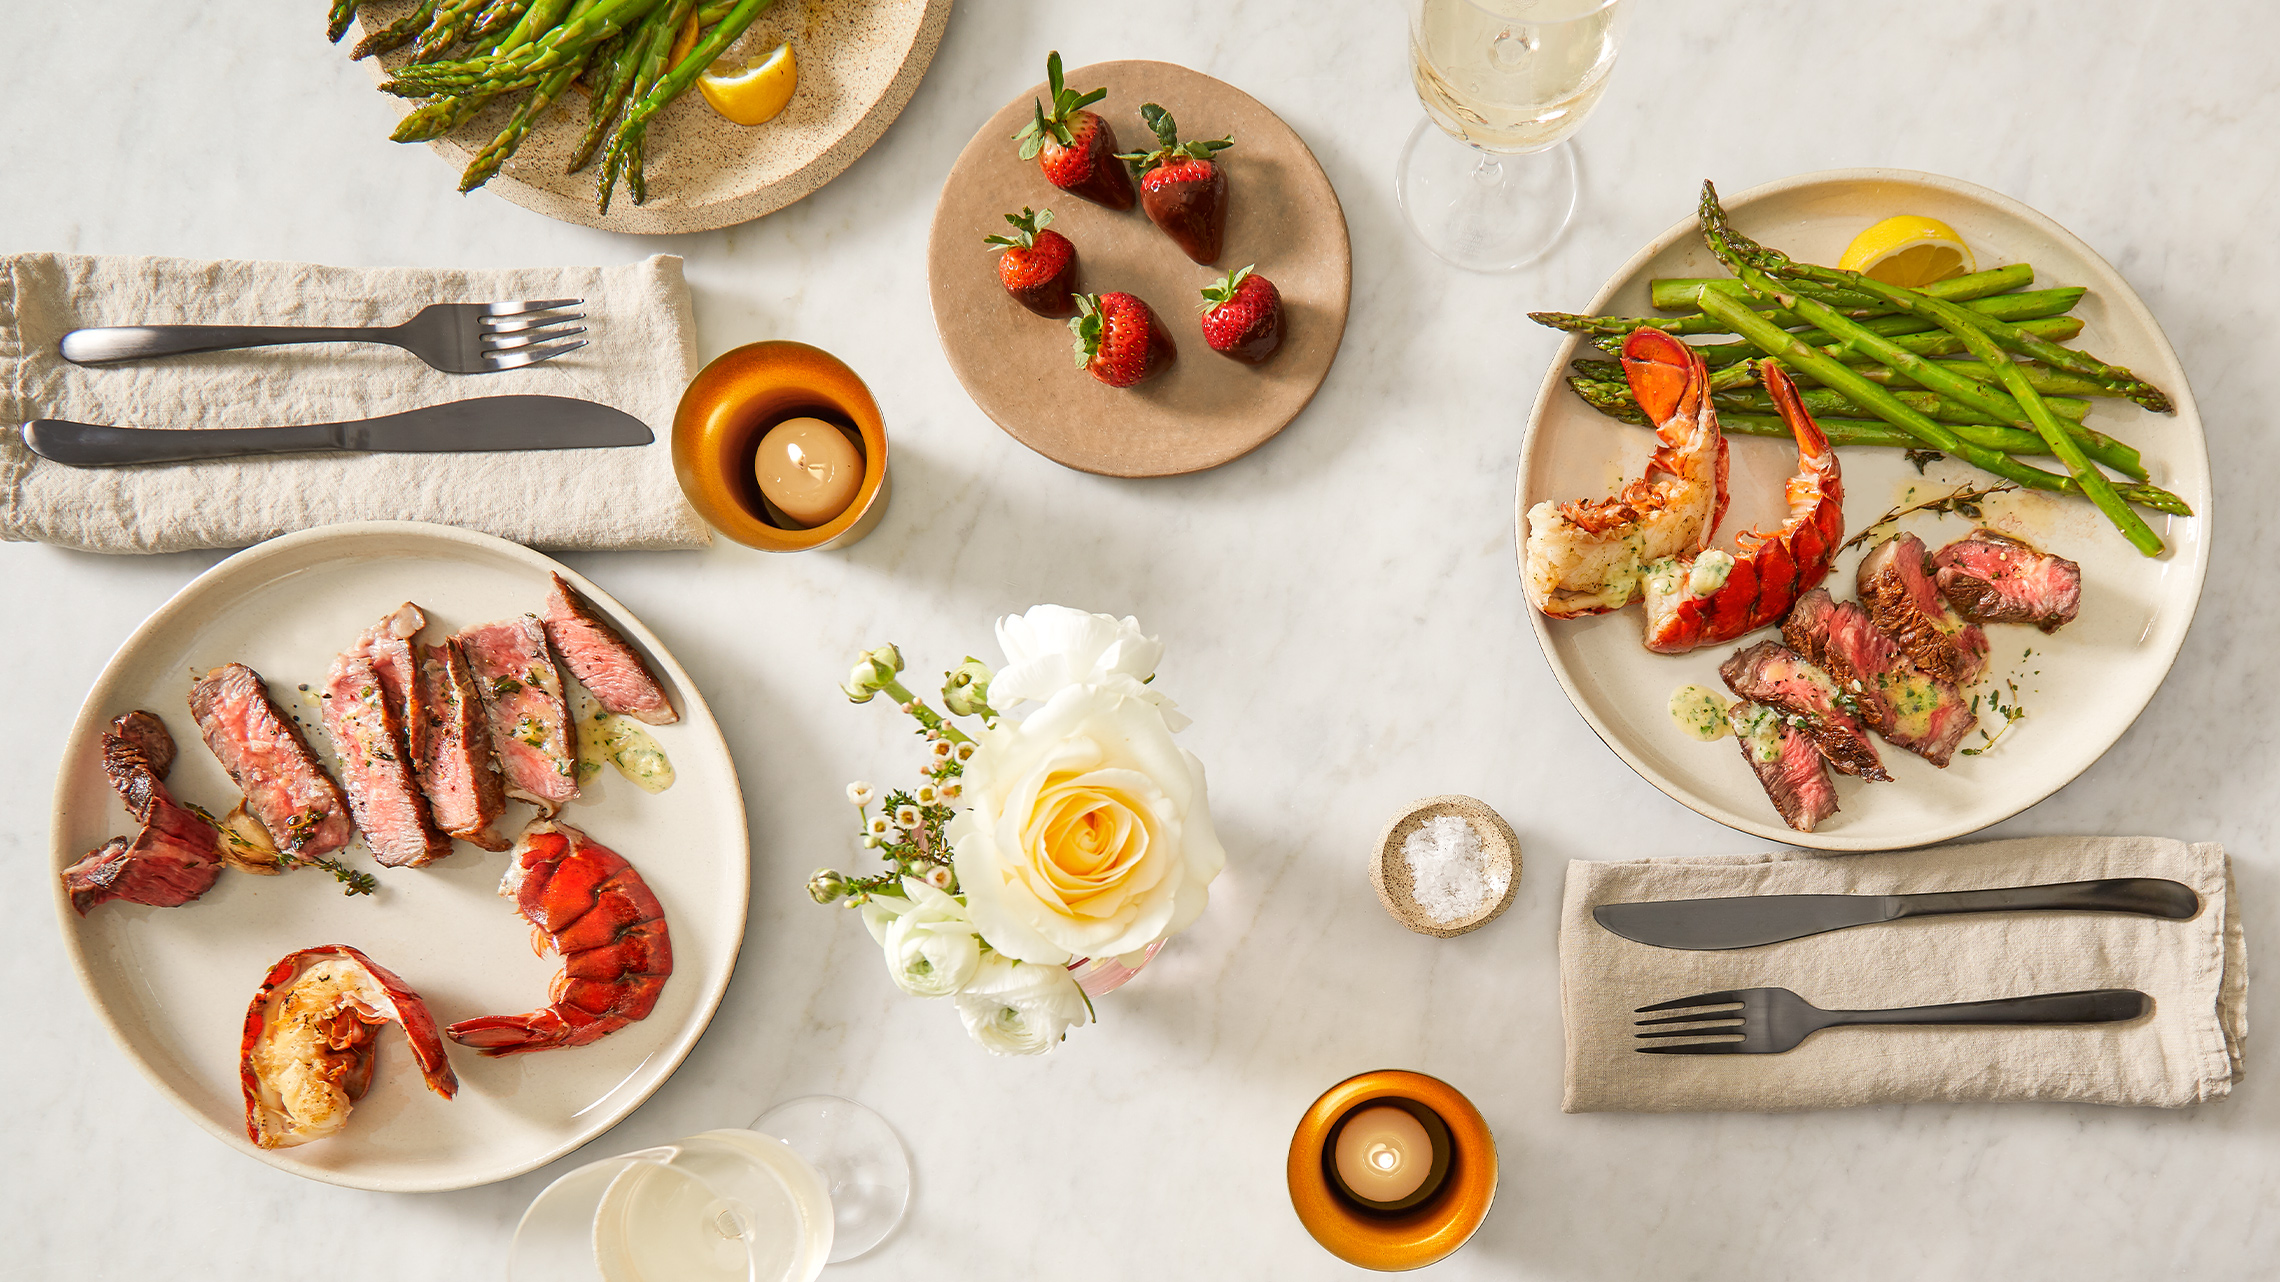 Skip the Reservations with This Ultimate Valentine's Day Dinner Spread